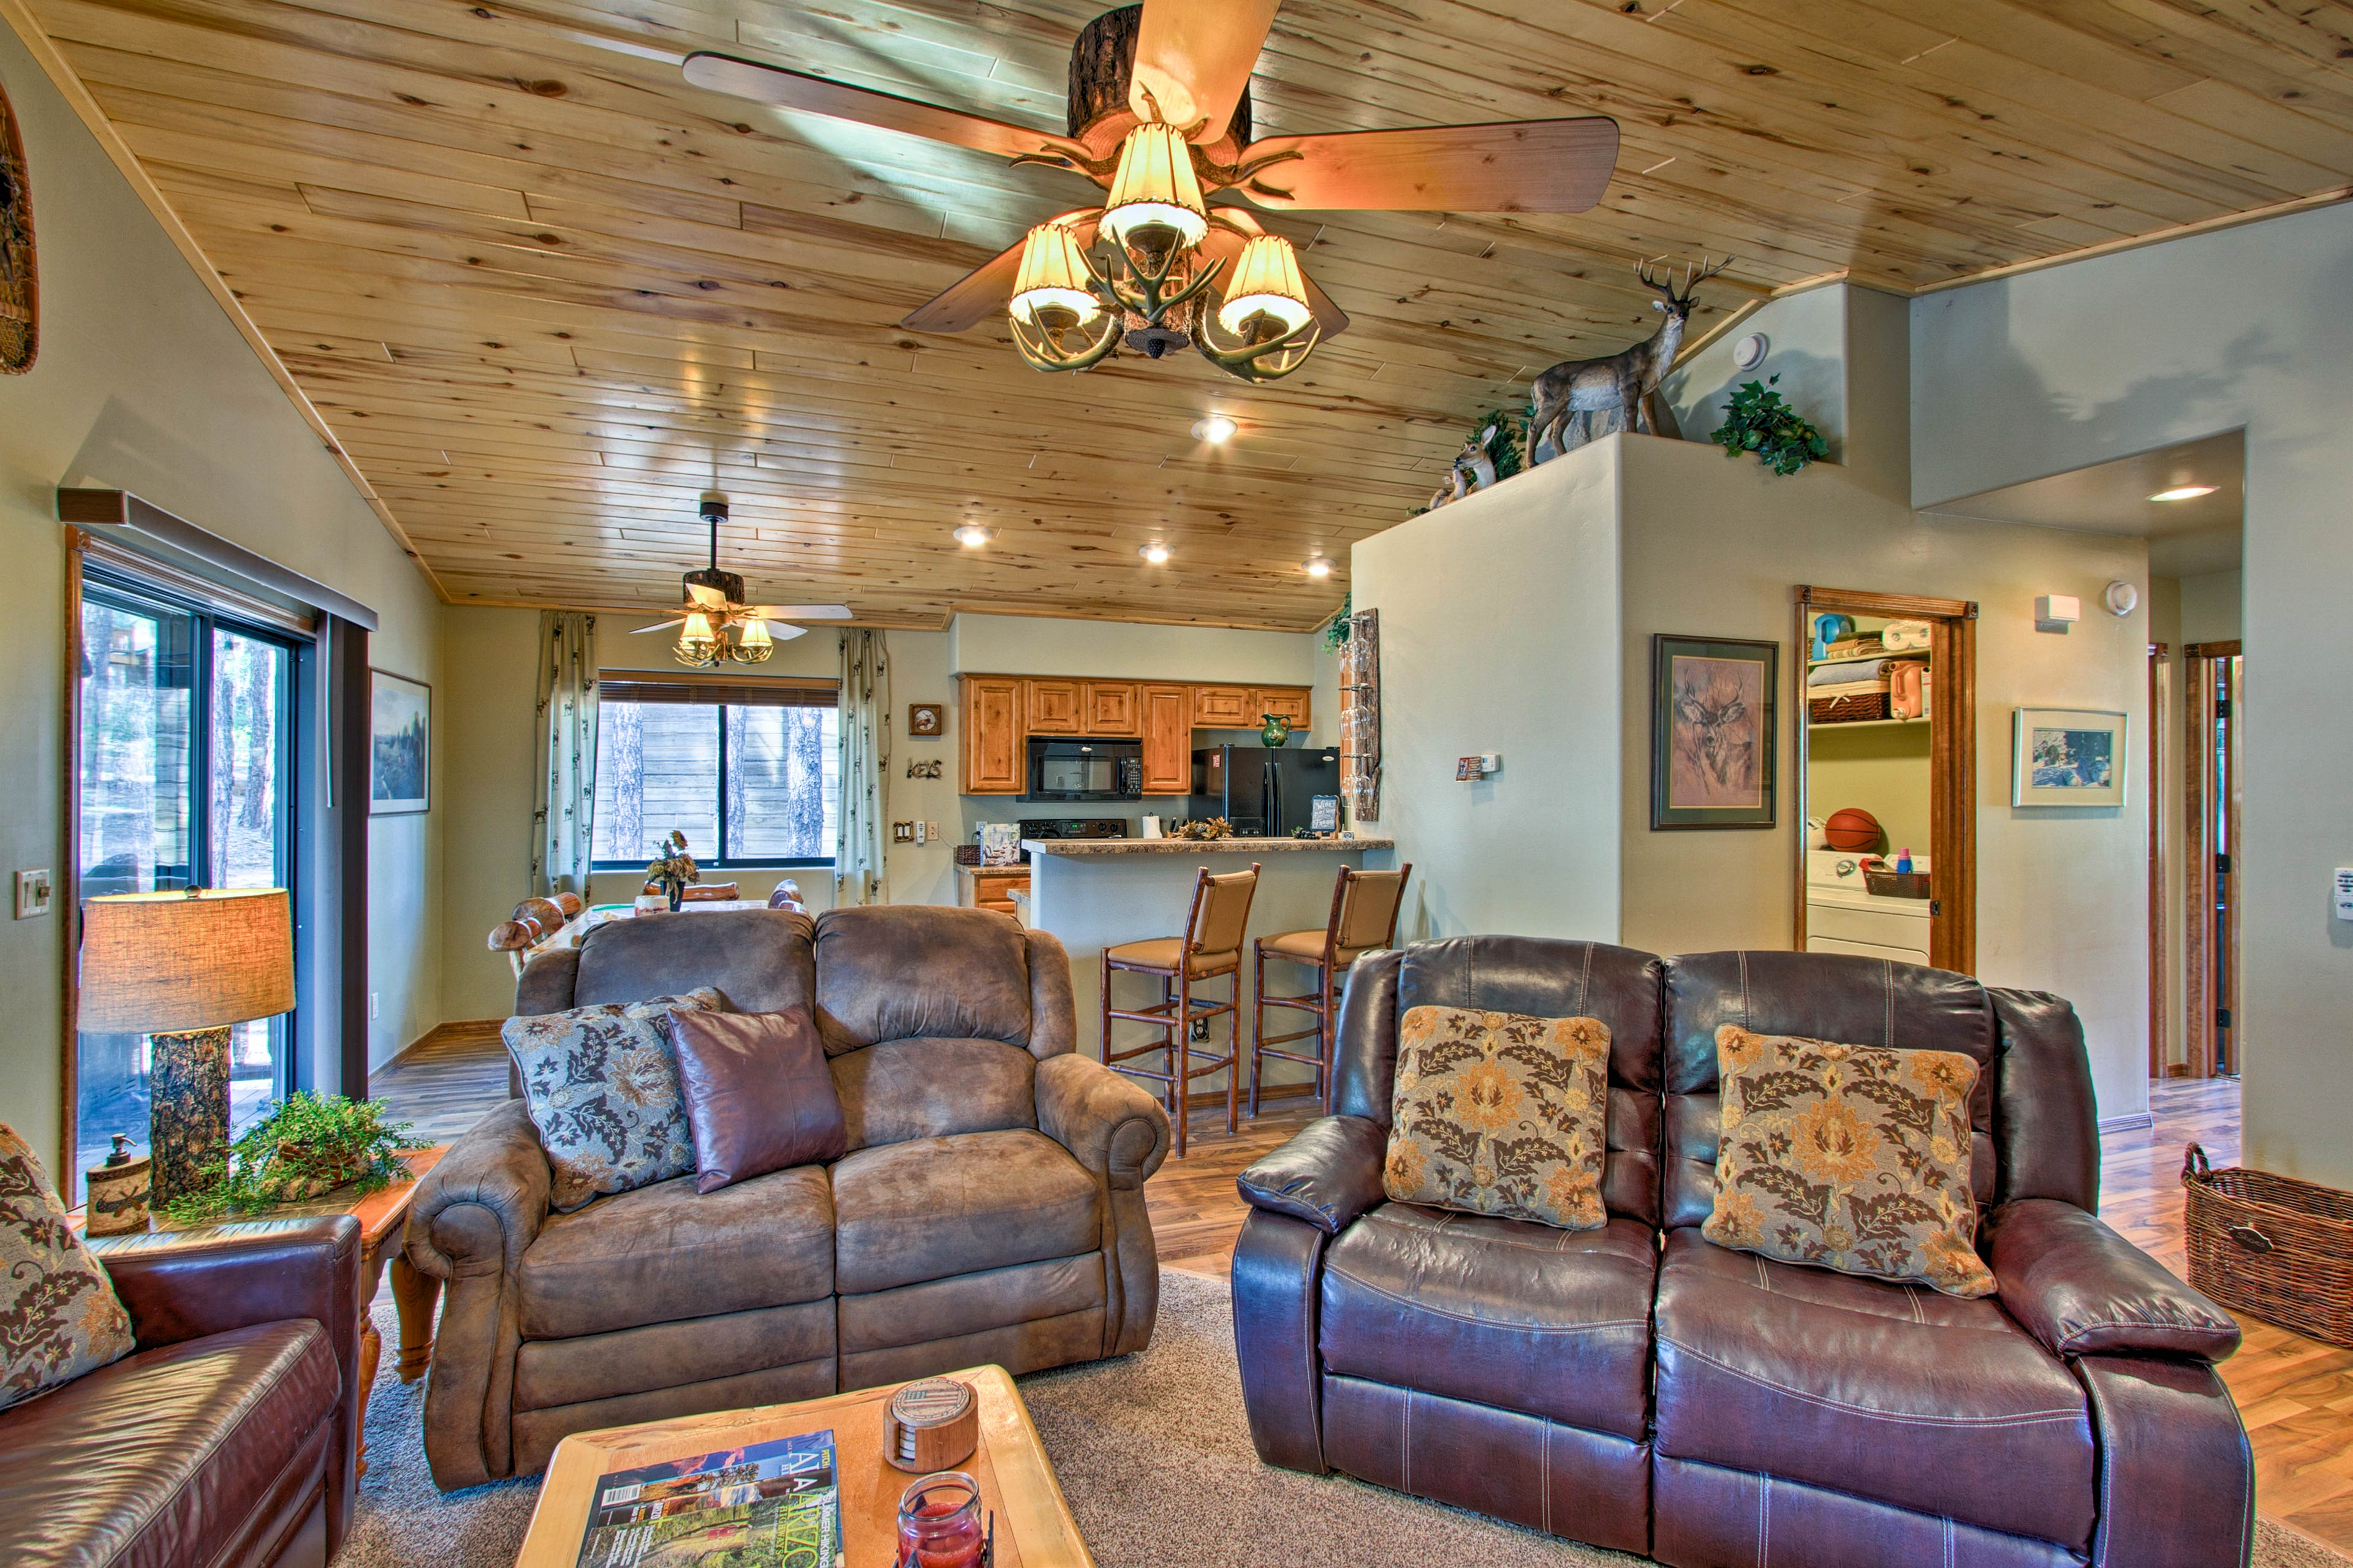 Grab a seat on one of the couches and get comfortable!